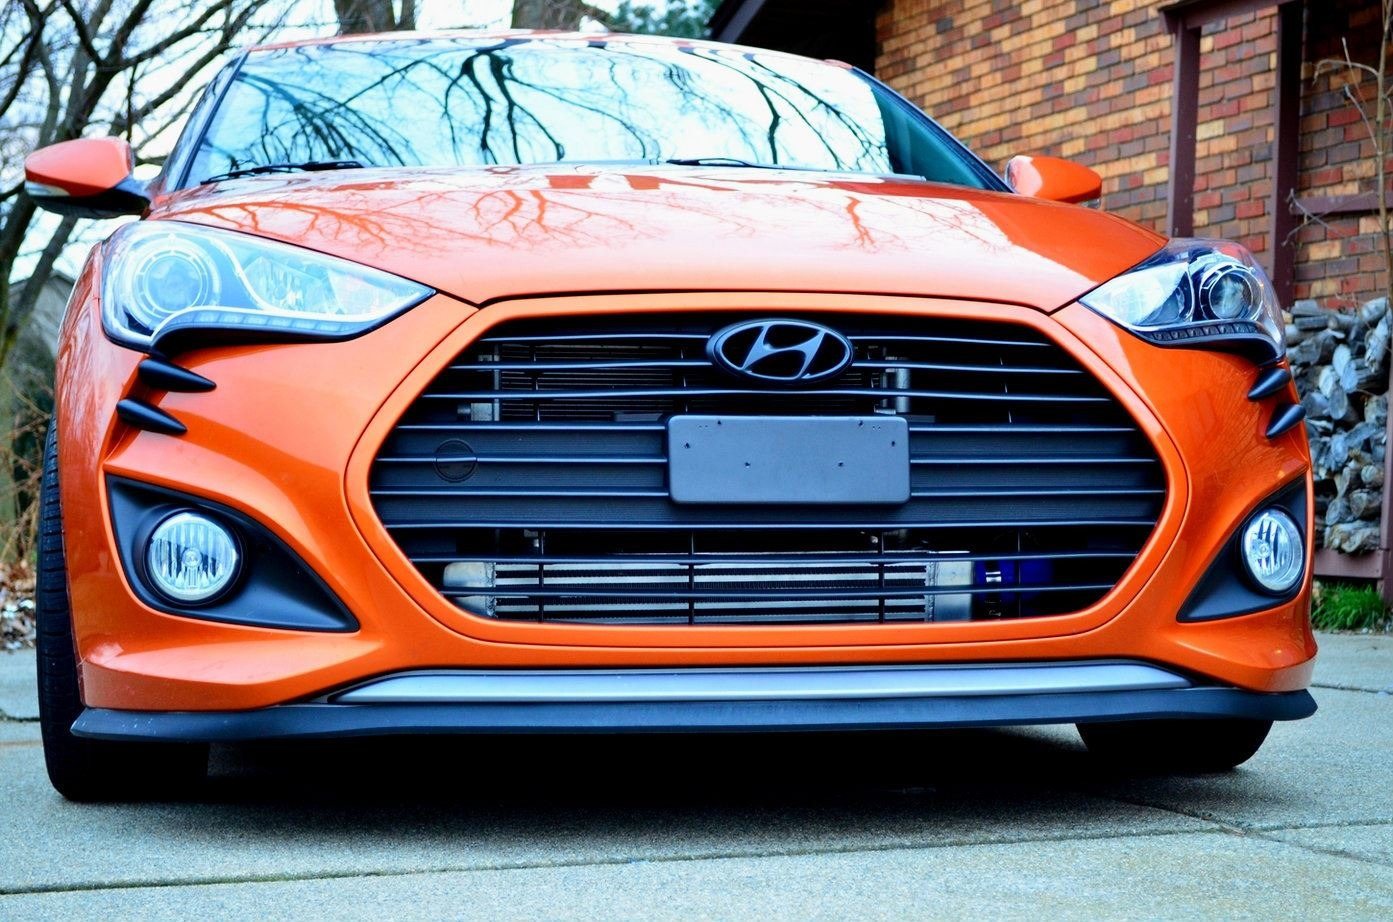 Ts Front Mount Intercooler Kit For 2013 Hyundai Veloster